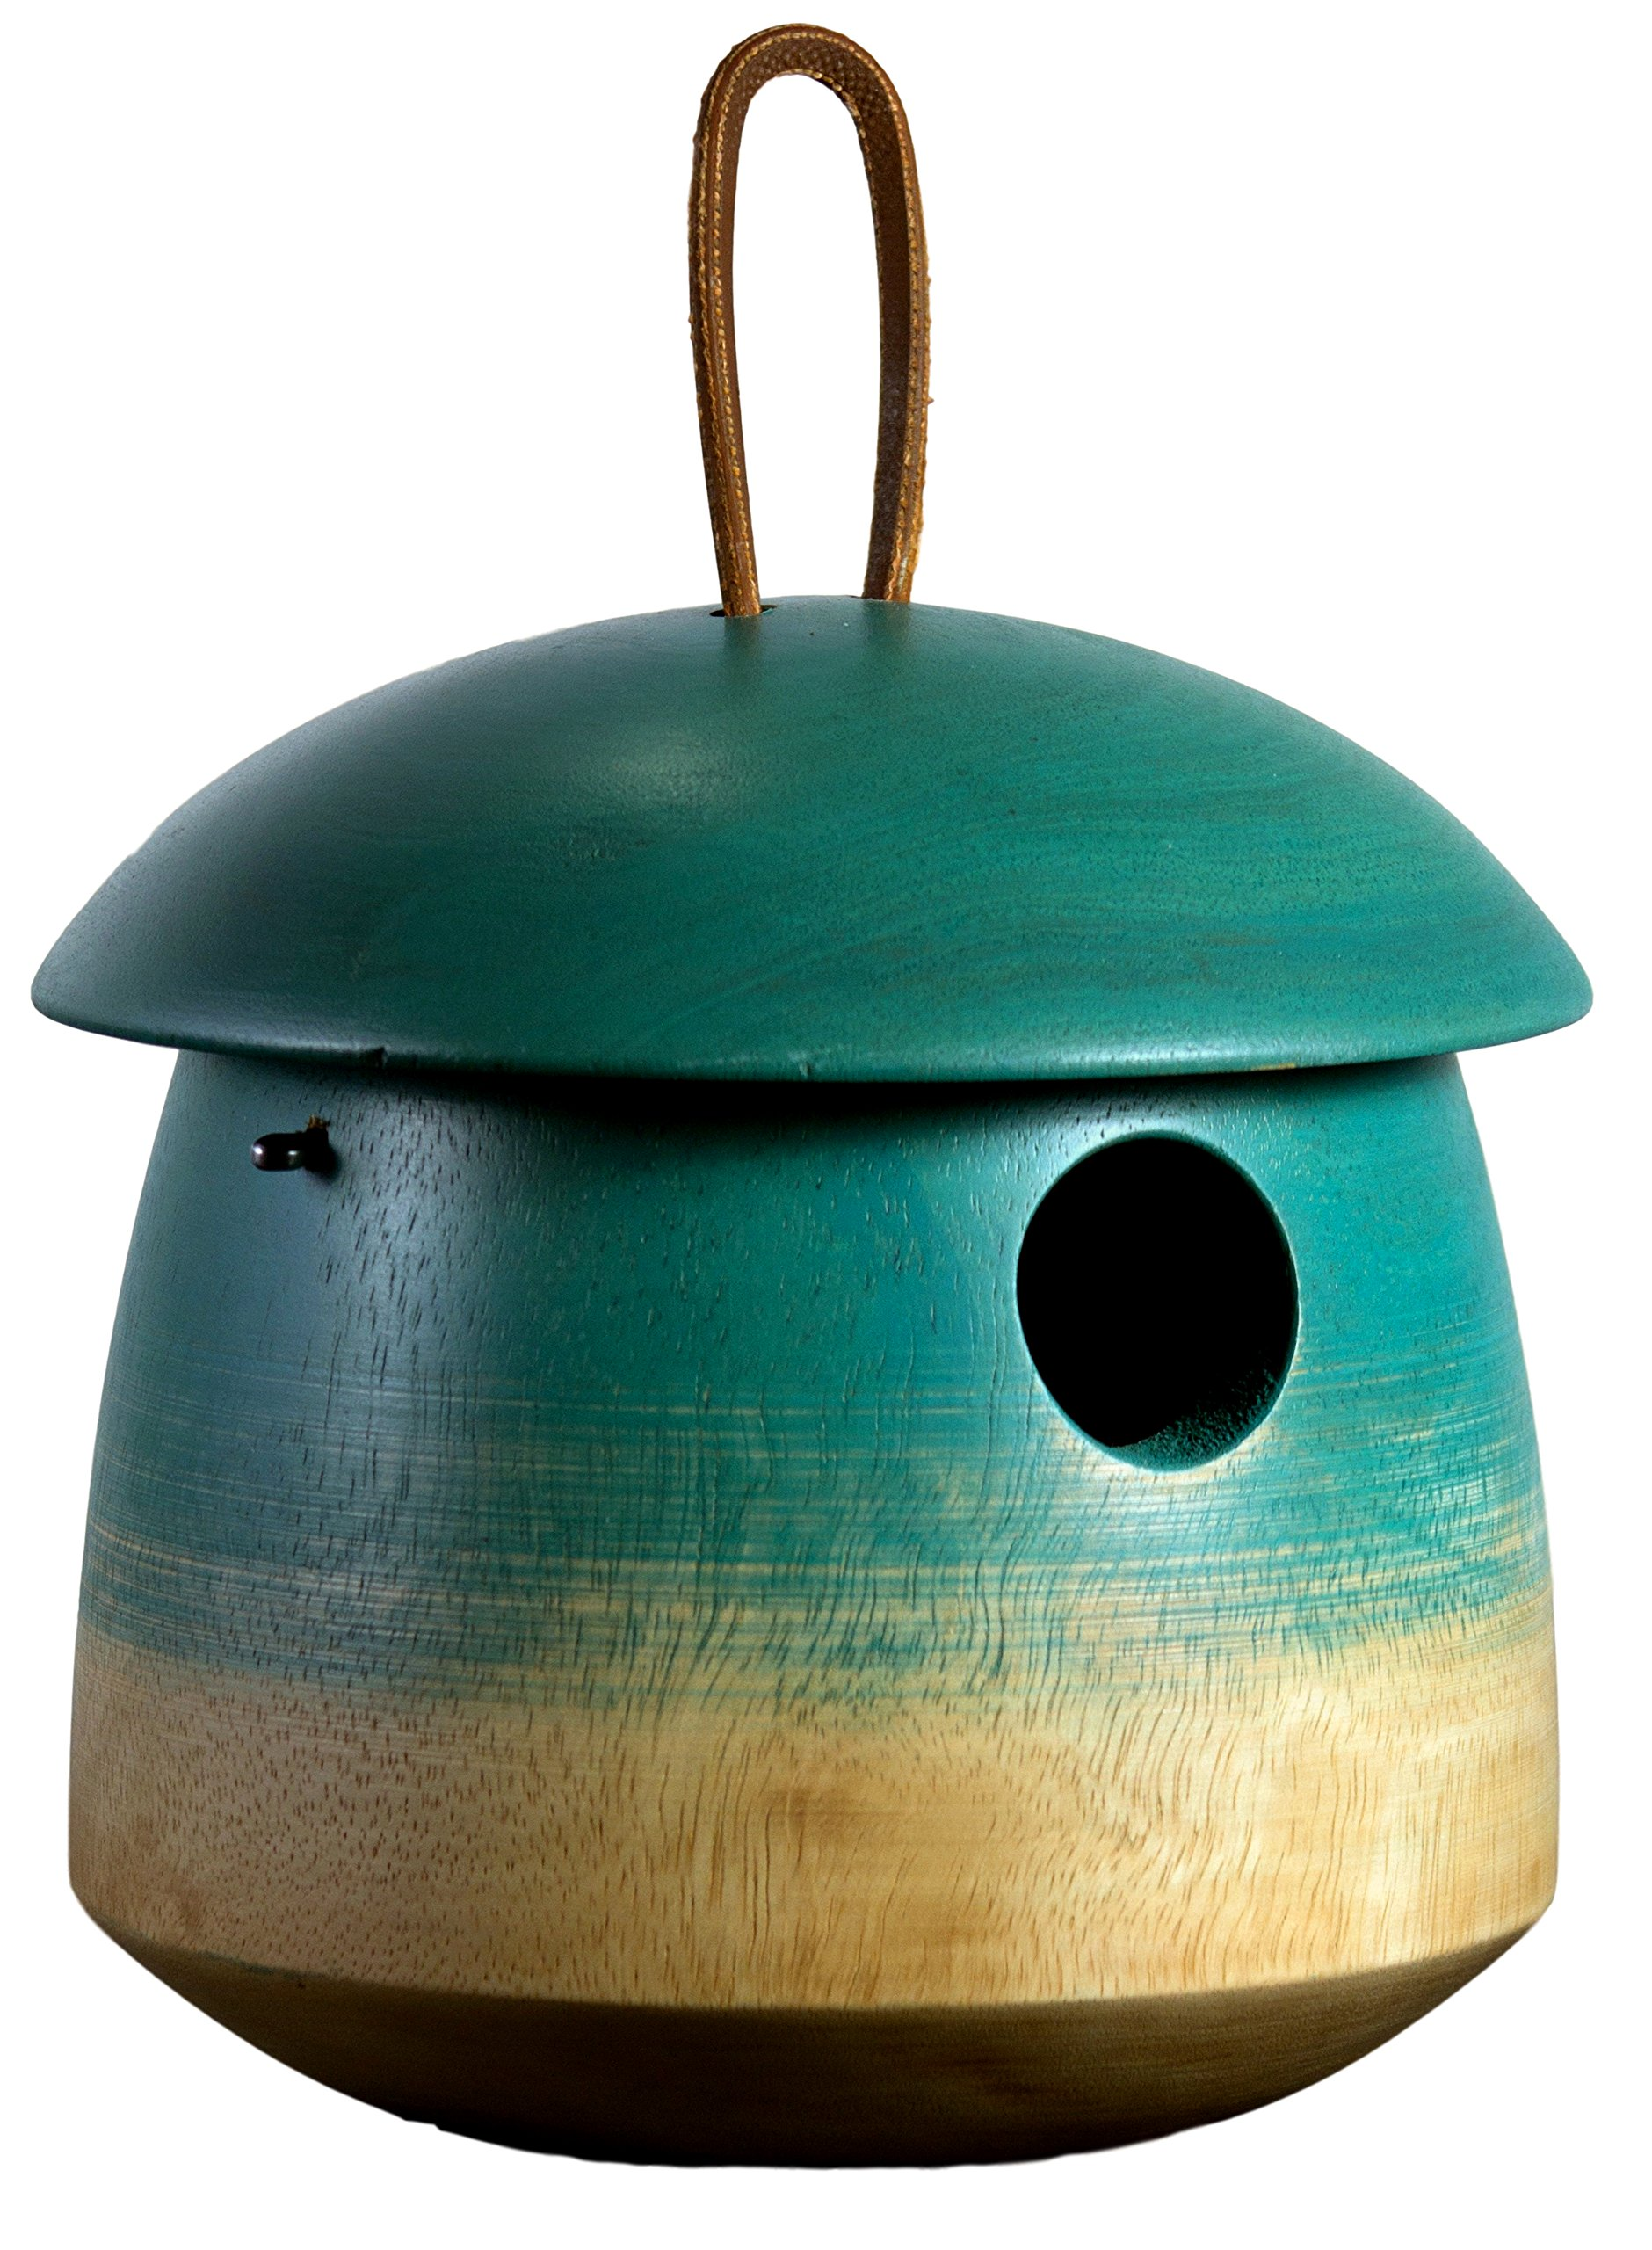 """Tumble Bird Home, Mango Wood, Painted, Sized for Small Songbirds, Blue, 6""""x6""""x6"""", 1⅛"""" Opening"""